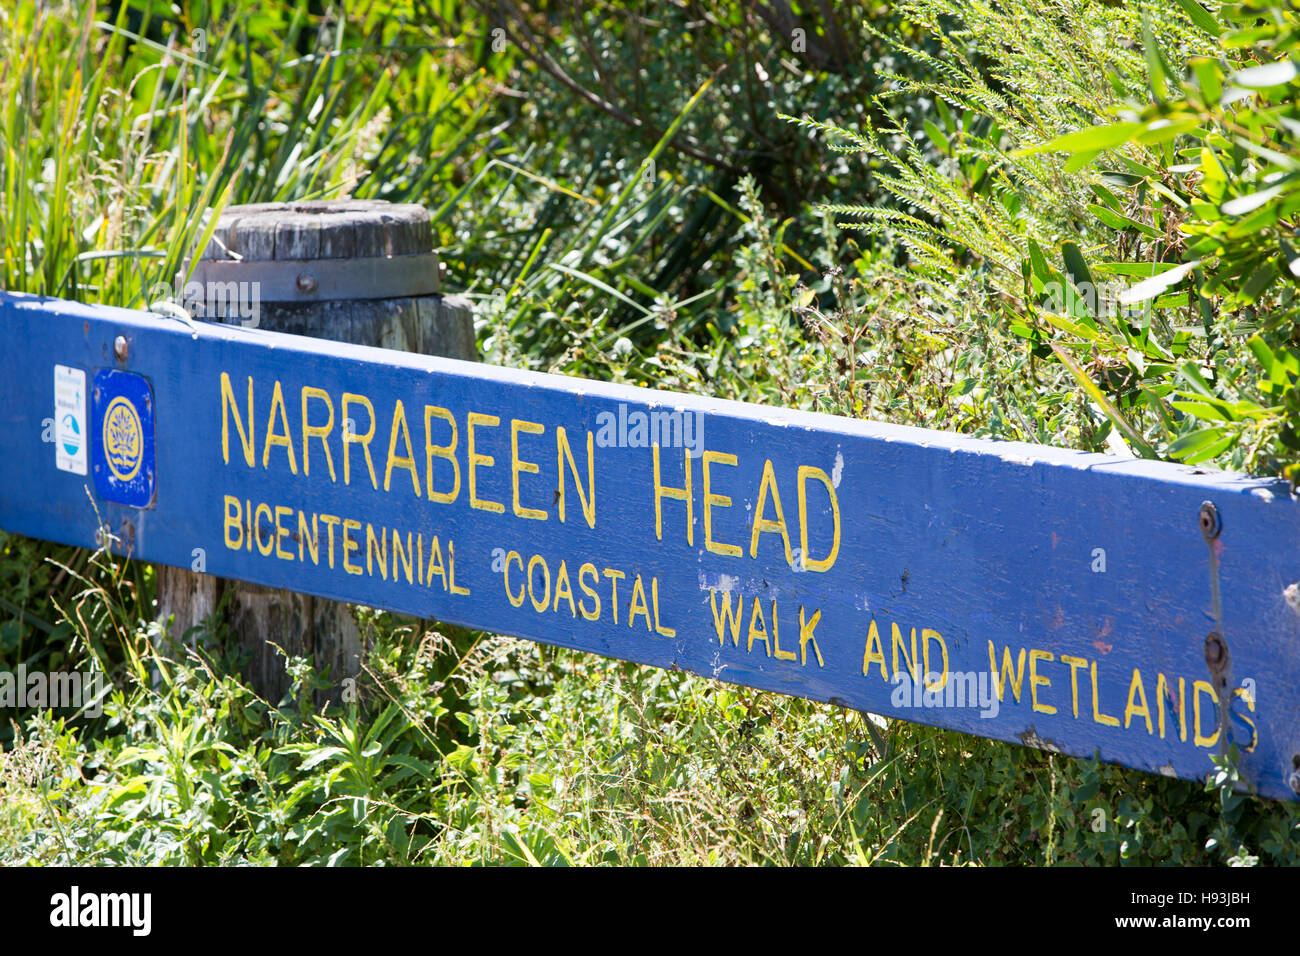 sign for Narrabeen head and bicentennial coastal walk and wetlands on Sydney northern beaches,new south wales,australia - Stock Image